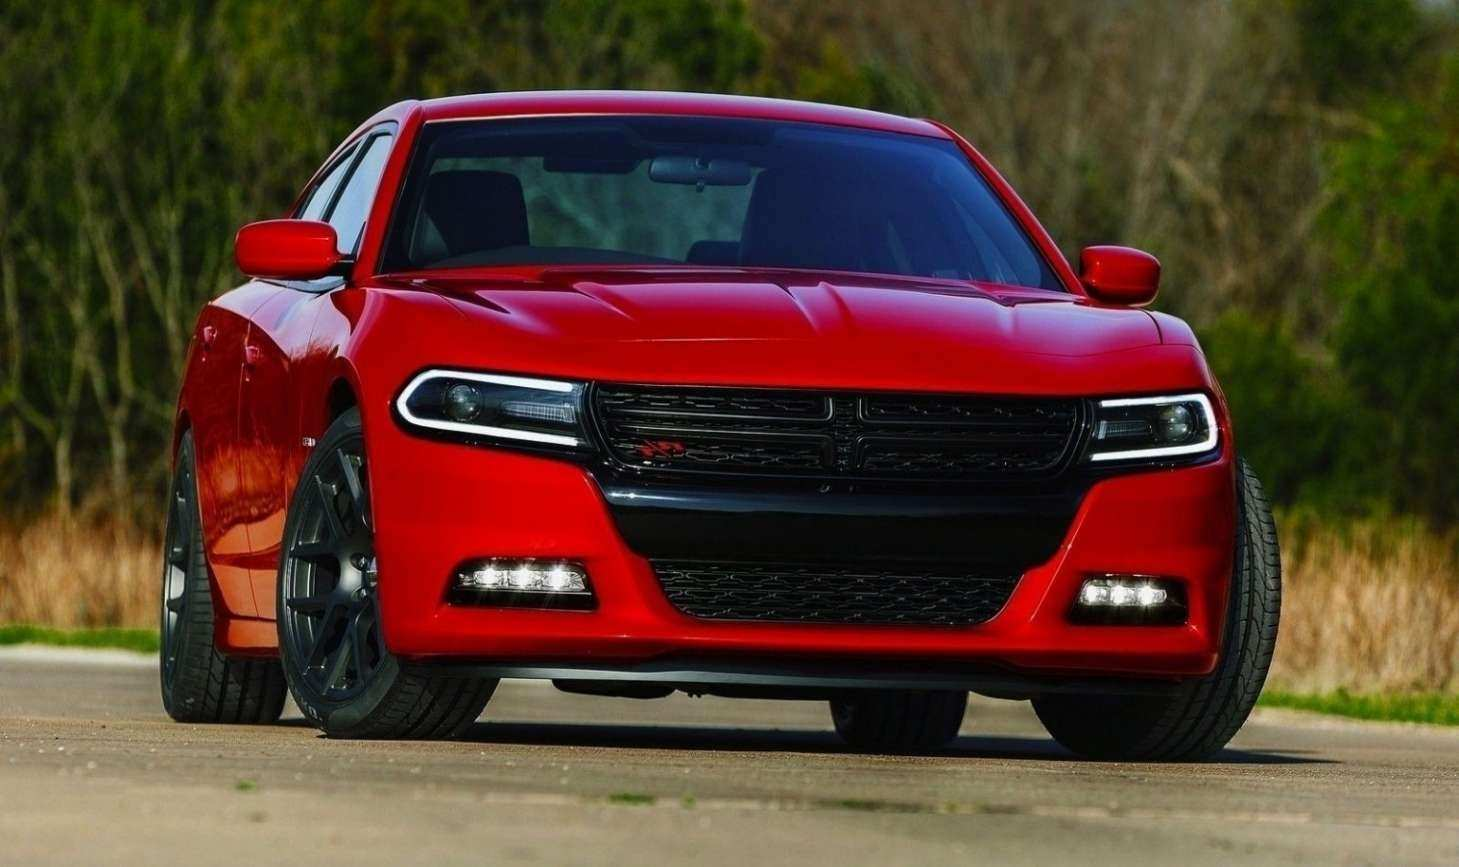 76 All New 2019 Dodge Avenger Srt New Concept